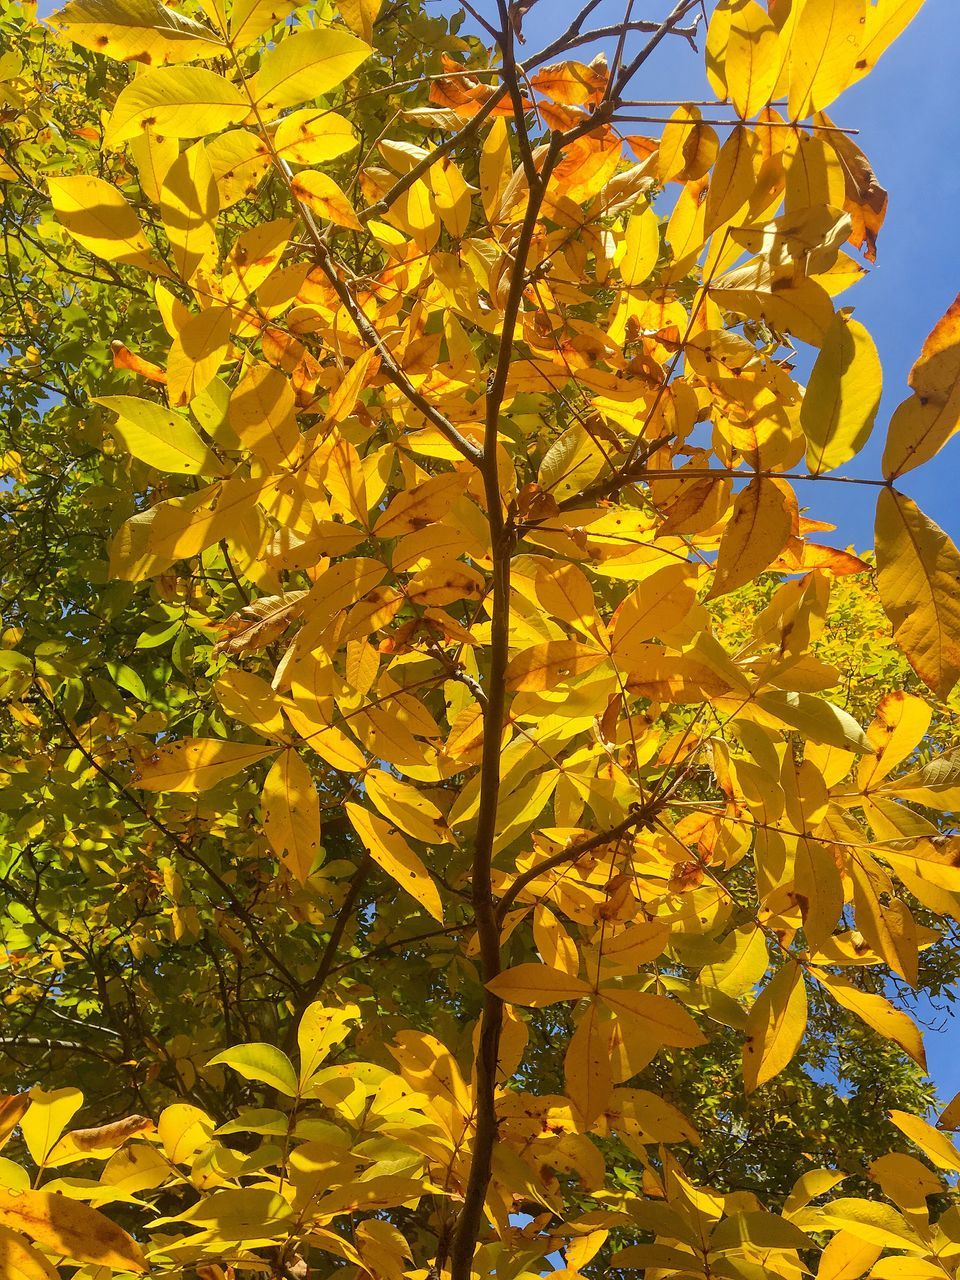 yellow, growth, leaf, sunlight, tree, nature, branch, outdoors, day, flower, no people, beauty in nature, fragility, plant, low angle view, freshness, close-up